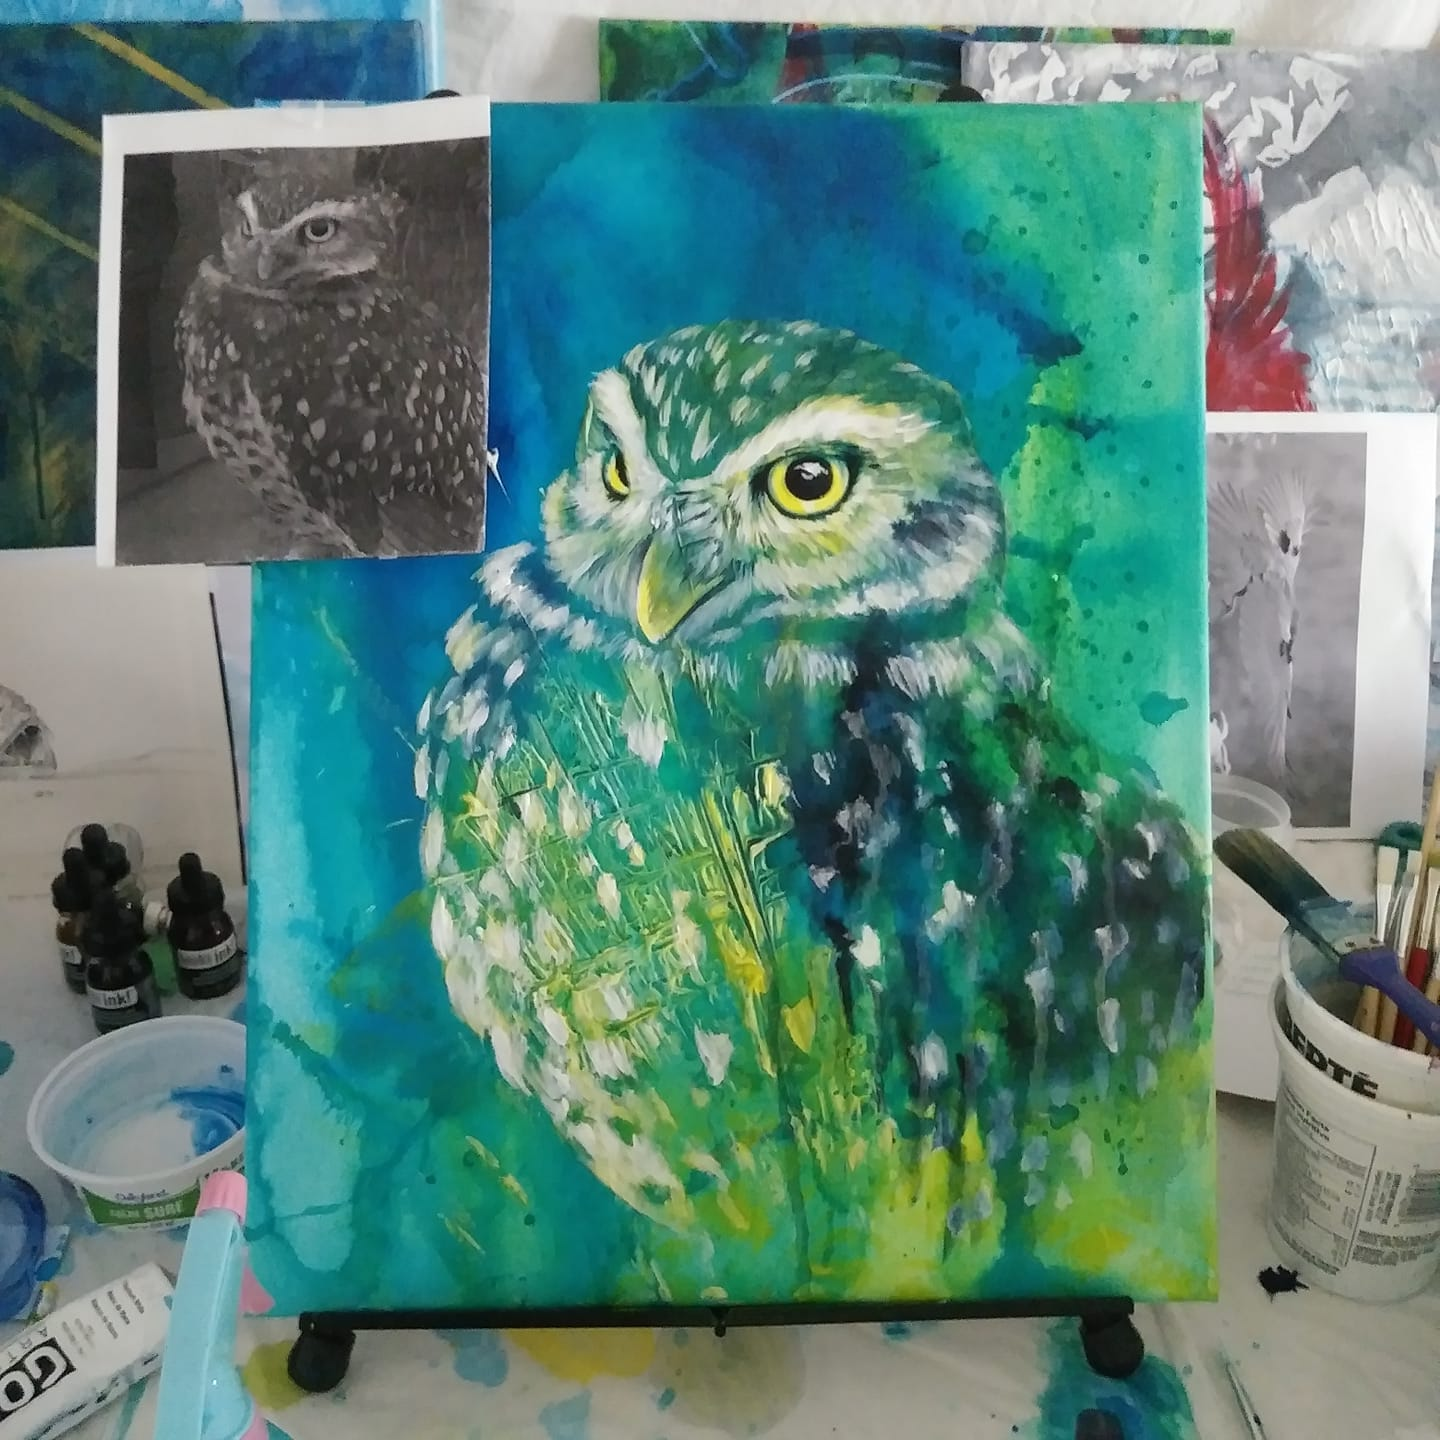 0981 Burrowing Owl WIP elisa friesen 2018.JPG